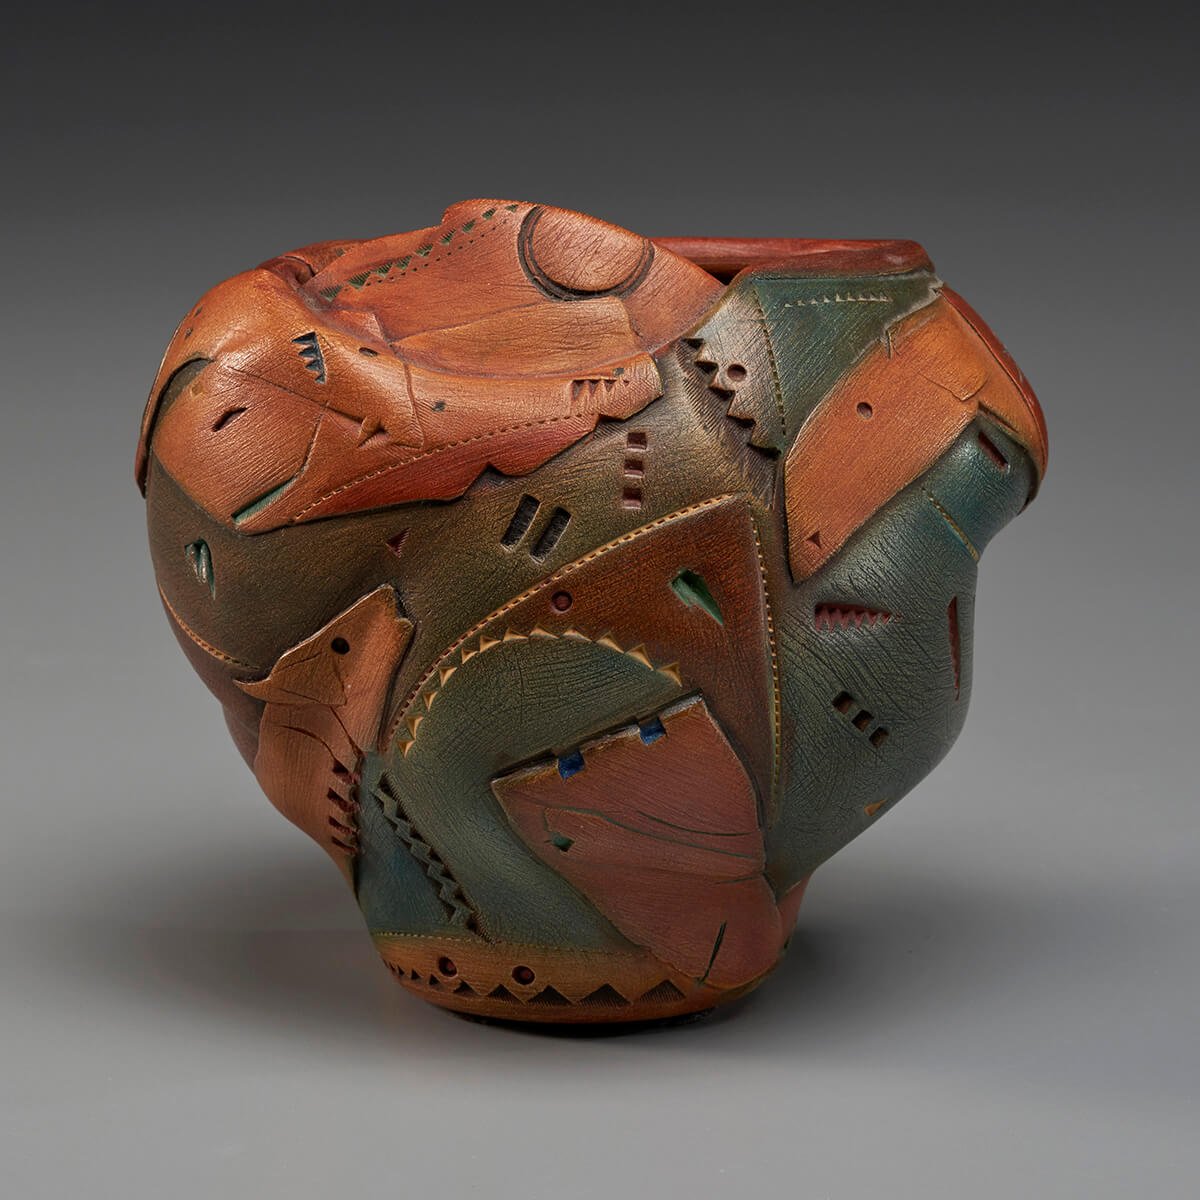 Porcelain Vessels by George Handy